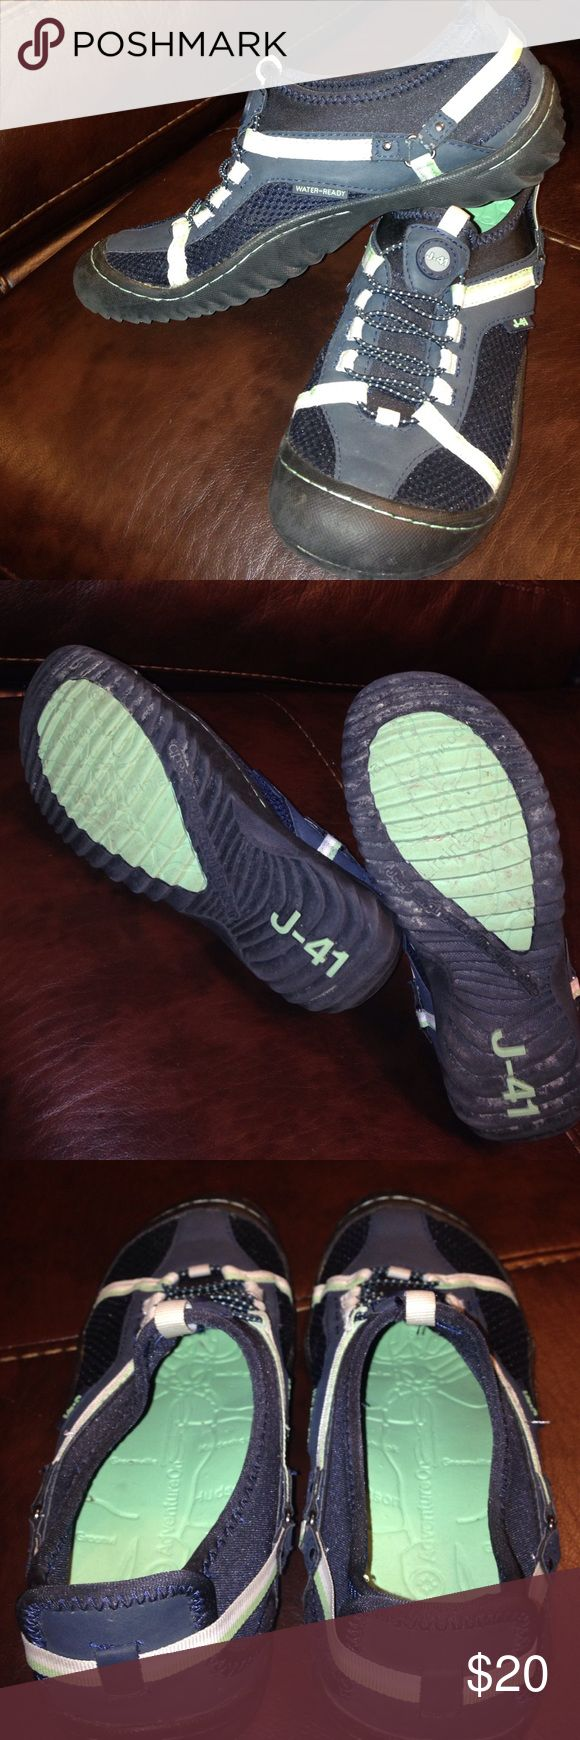 J-41 water shoes 7M Women's Blue, mint and white women's size 7M water shoes. Worn just a few times. Clean inside. Typical wear evident on bottom. J-41 Jeep Tahoe shoes Jeep Shoes Athletic Shoes